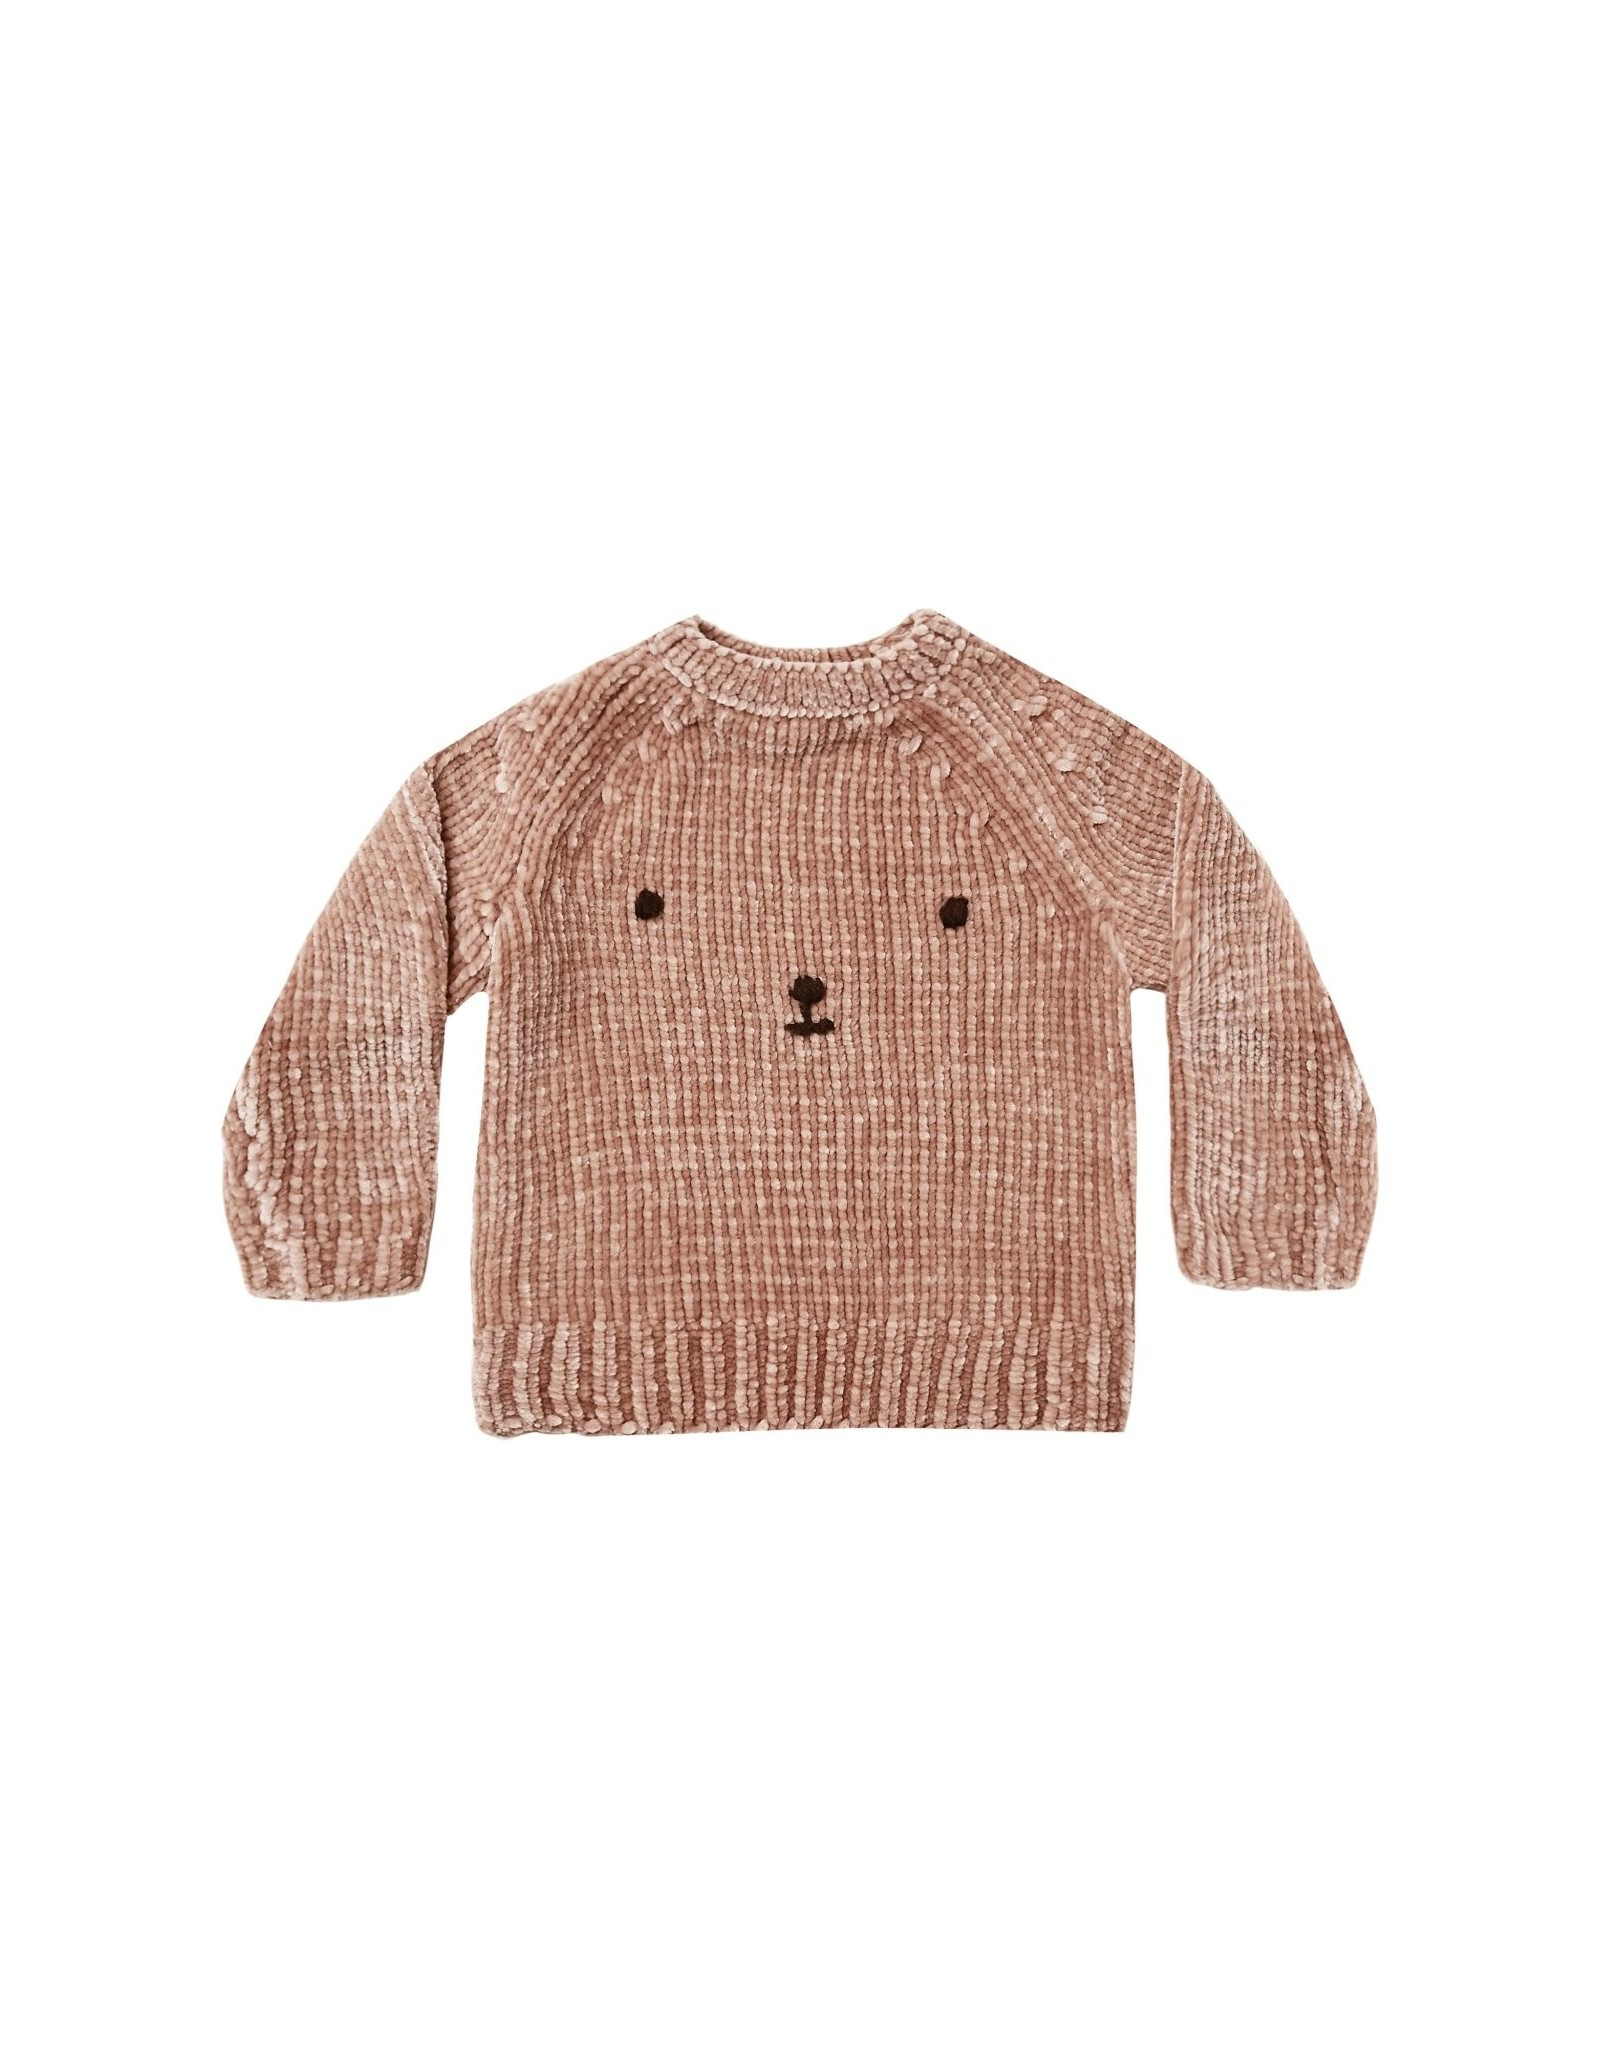 Rylee and Cru chenille sweater- bear